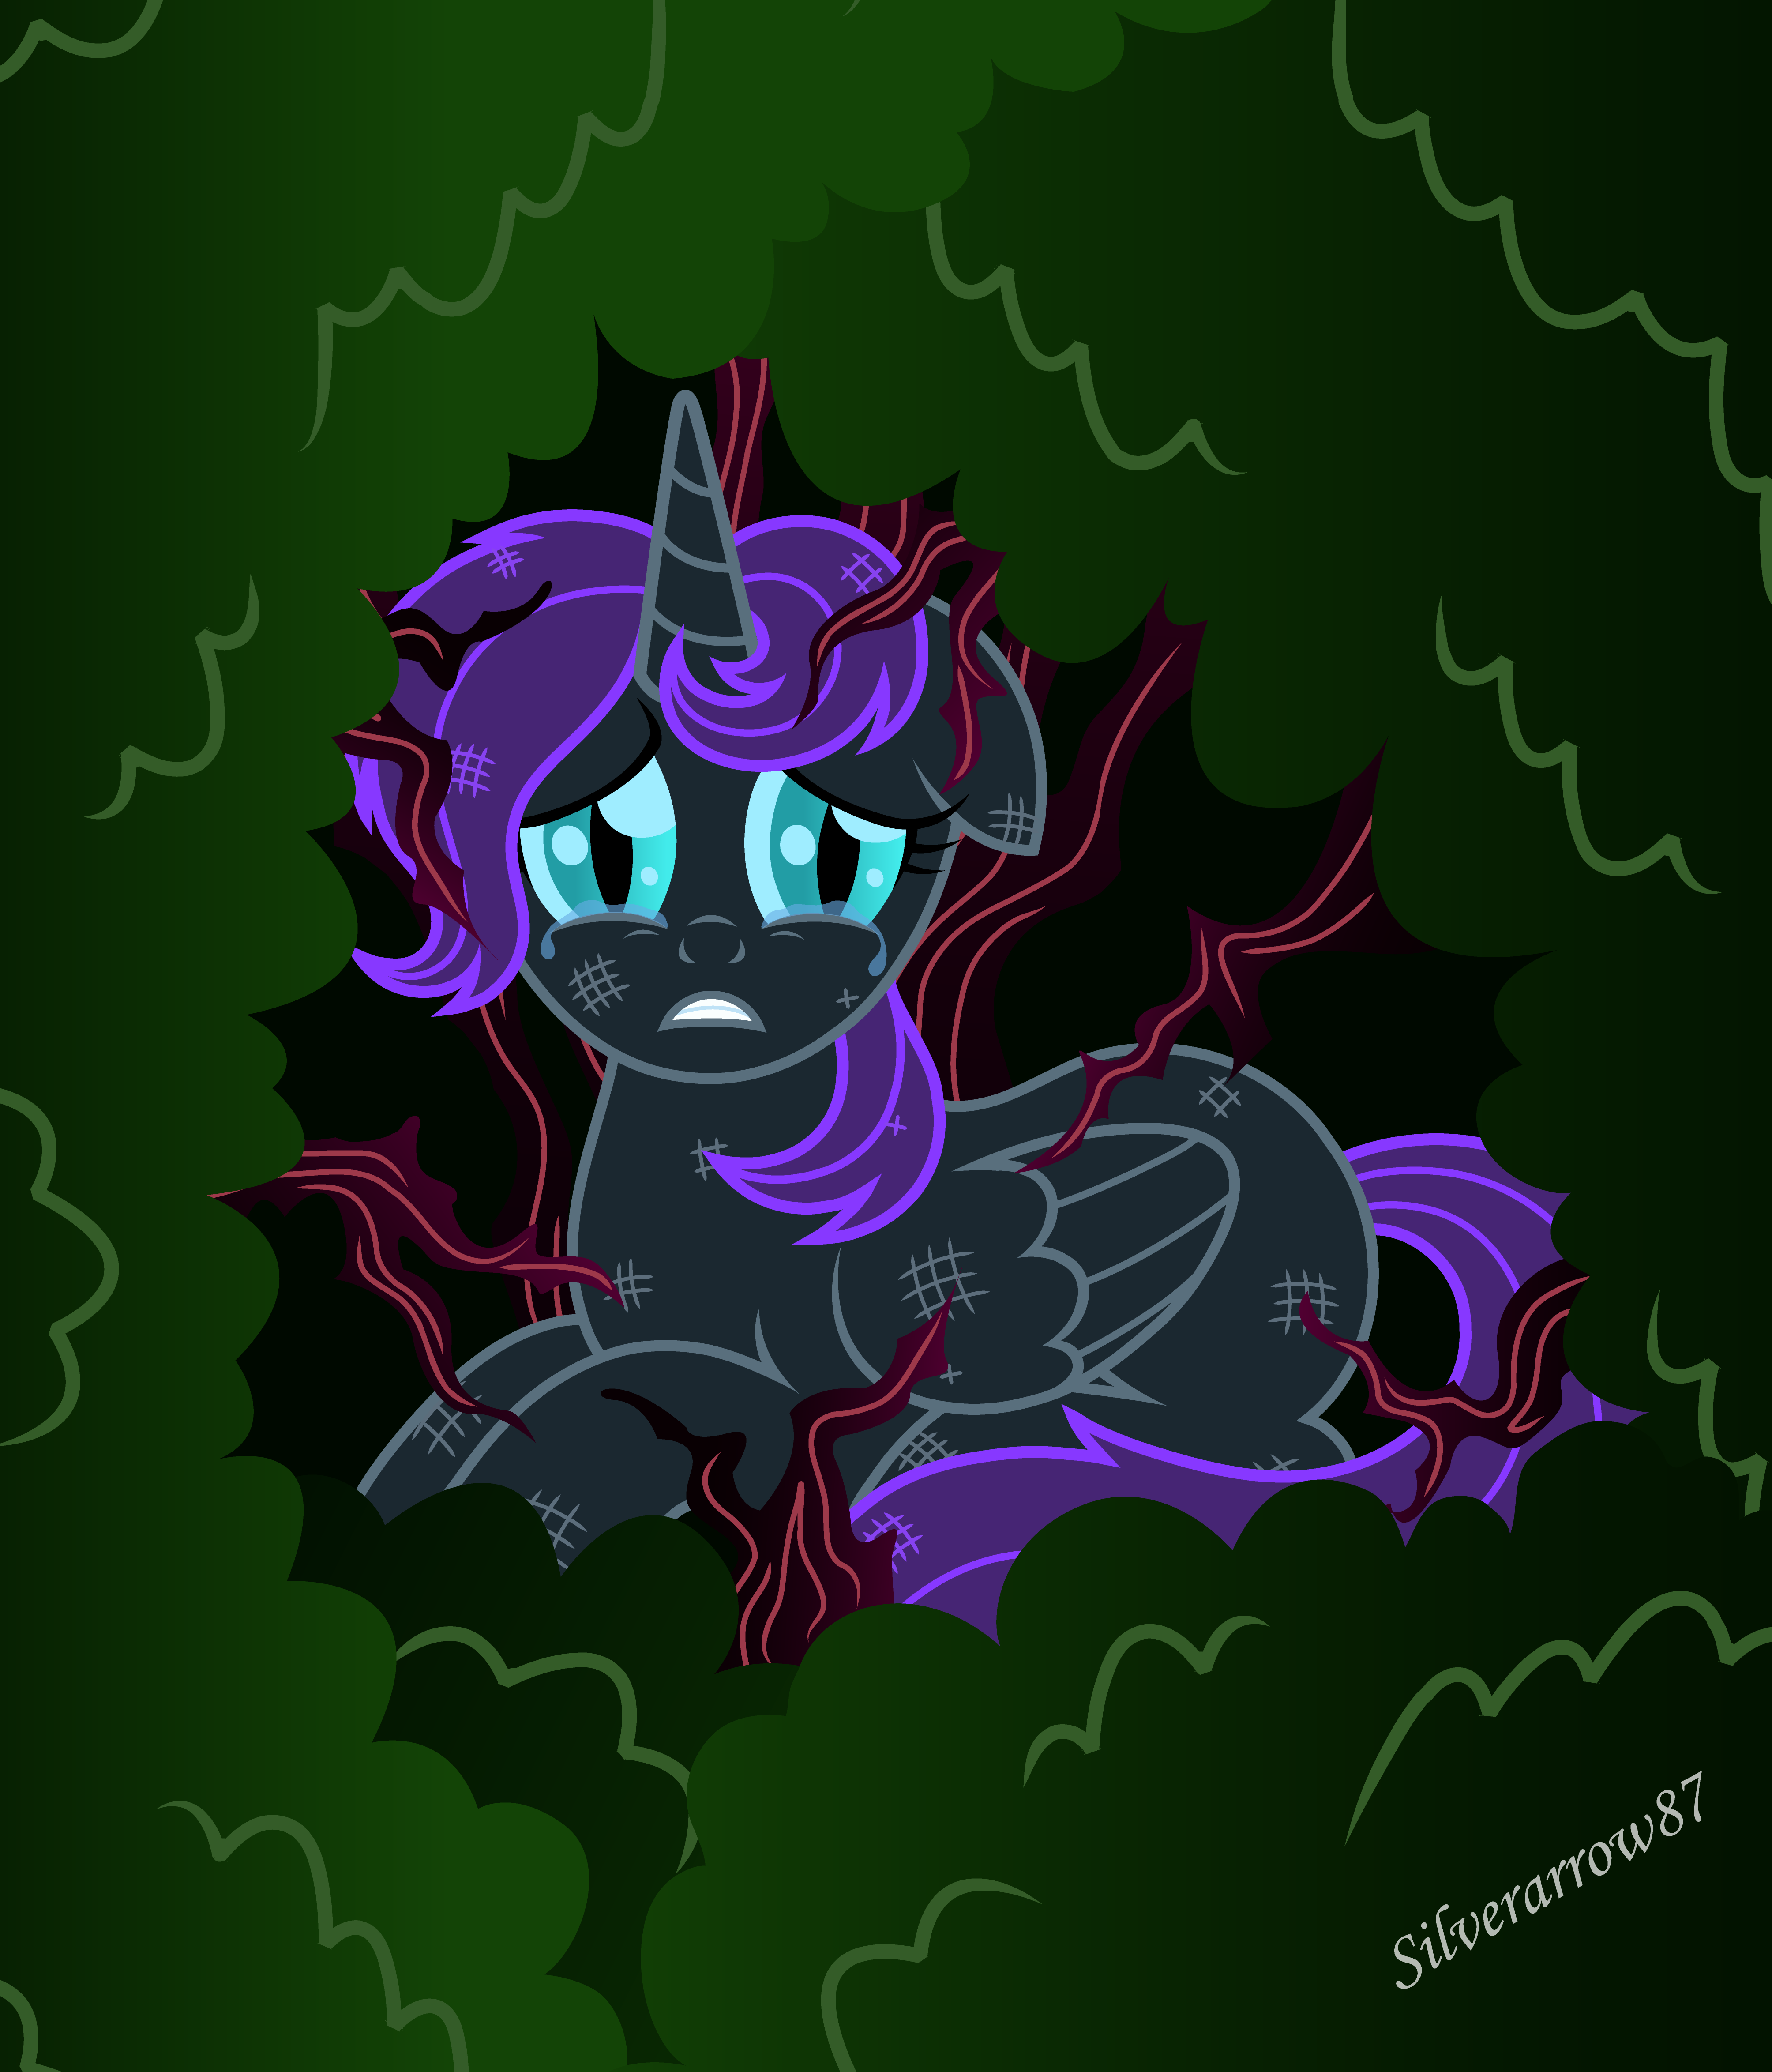 1201618__safe_artist-colon-silverarrow87_oc_oc-colon-nyx_oc+only_absurd+res_alicorn_alicorn+oc_bush_injured_past+sins_pony_scared_solo.png